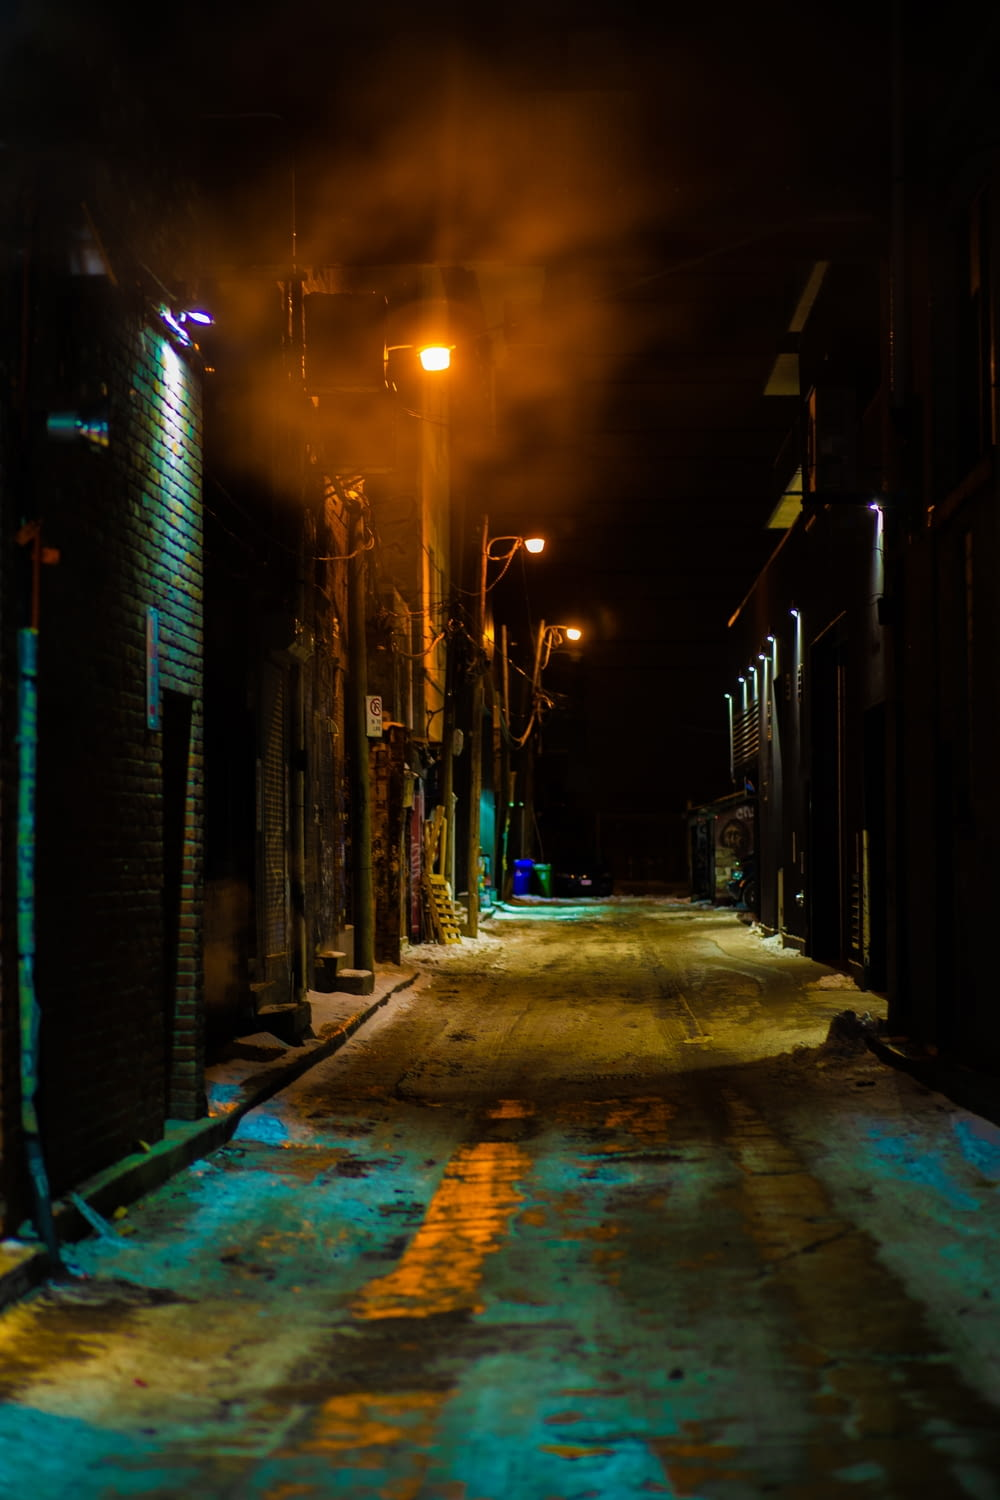 empty street between buildings during night time